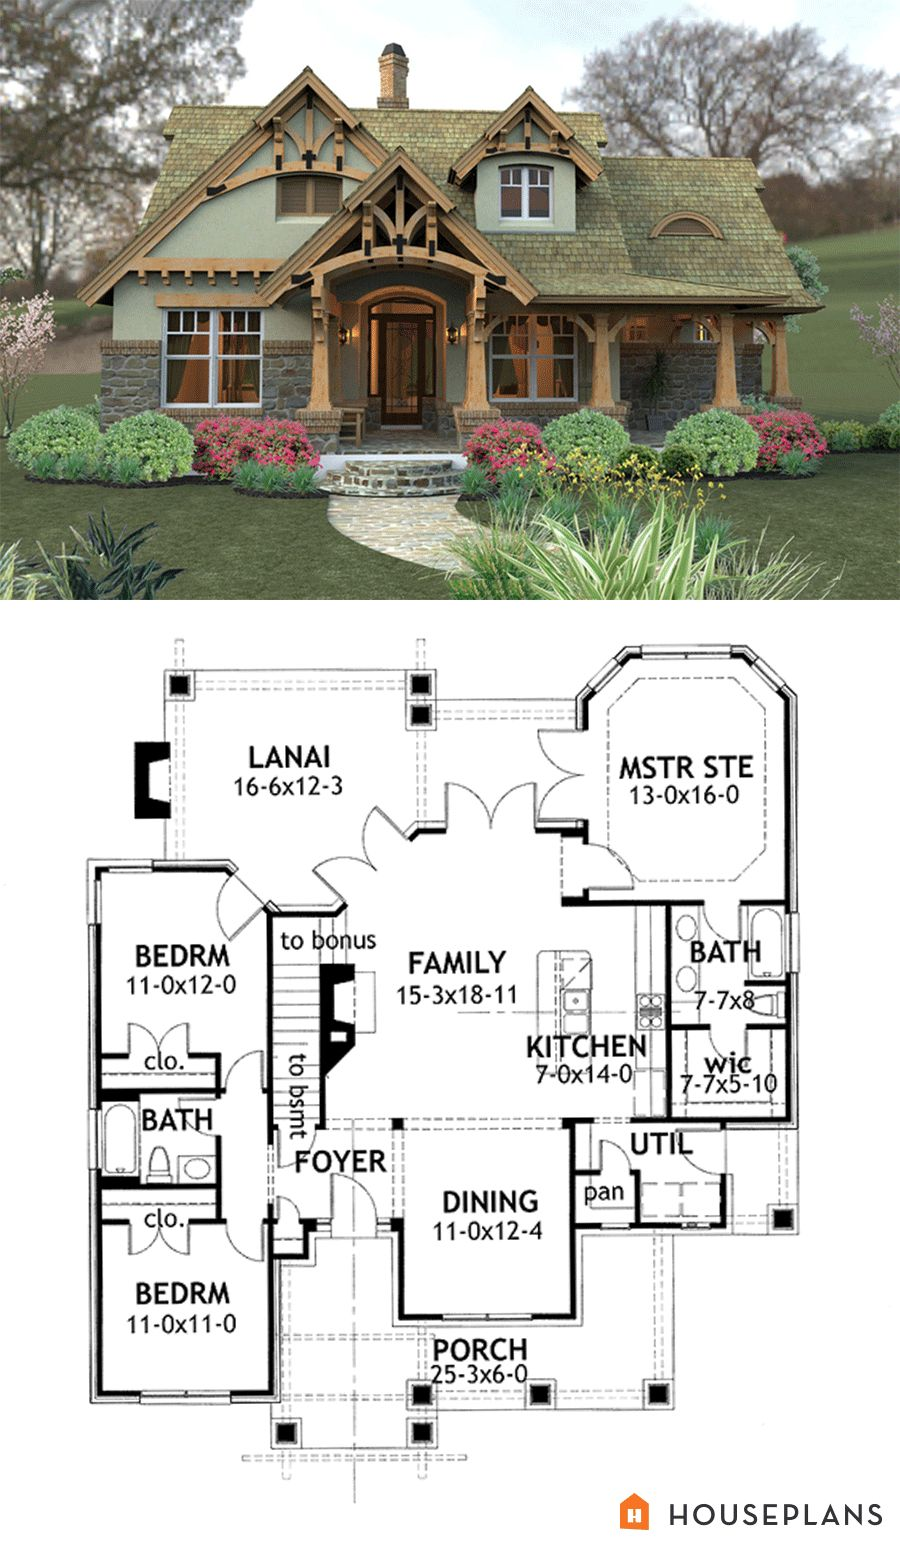 Small Mountain Craftsman House Plans Craftsman House Plans Basement House Plans Mountain House Plans